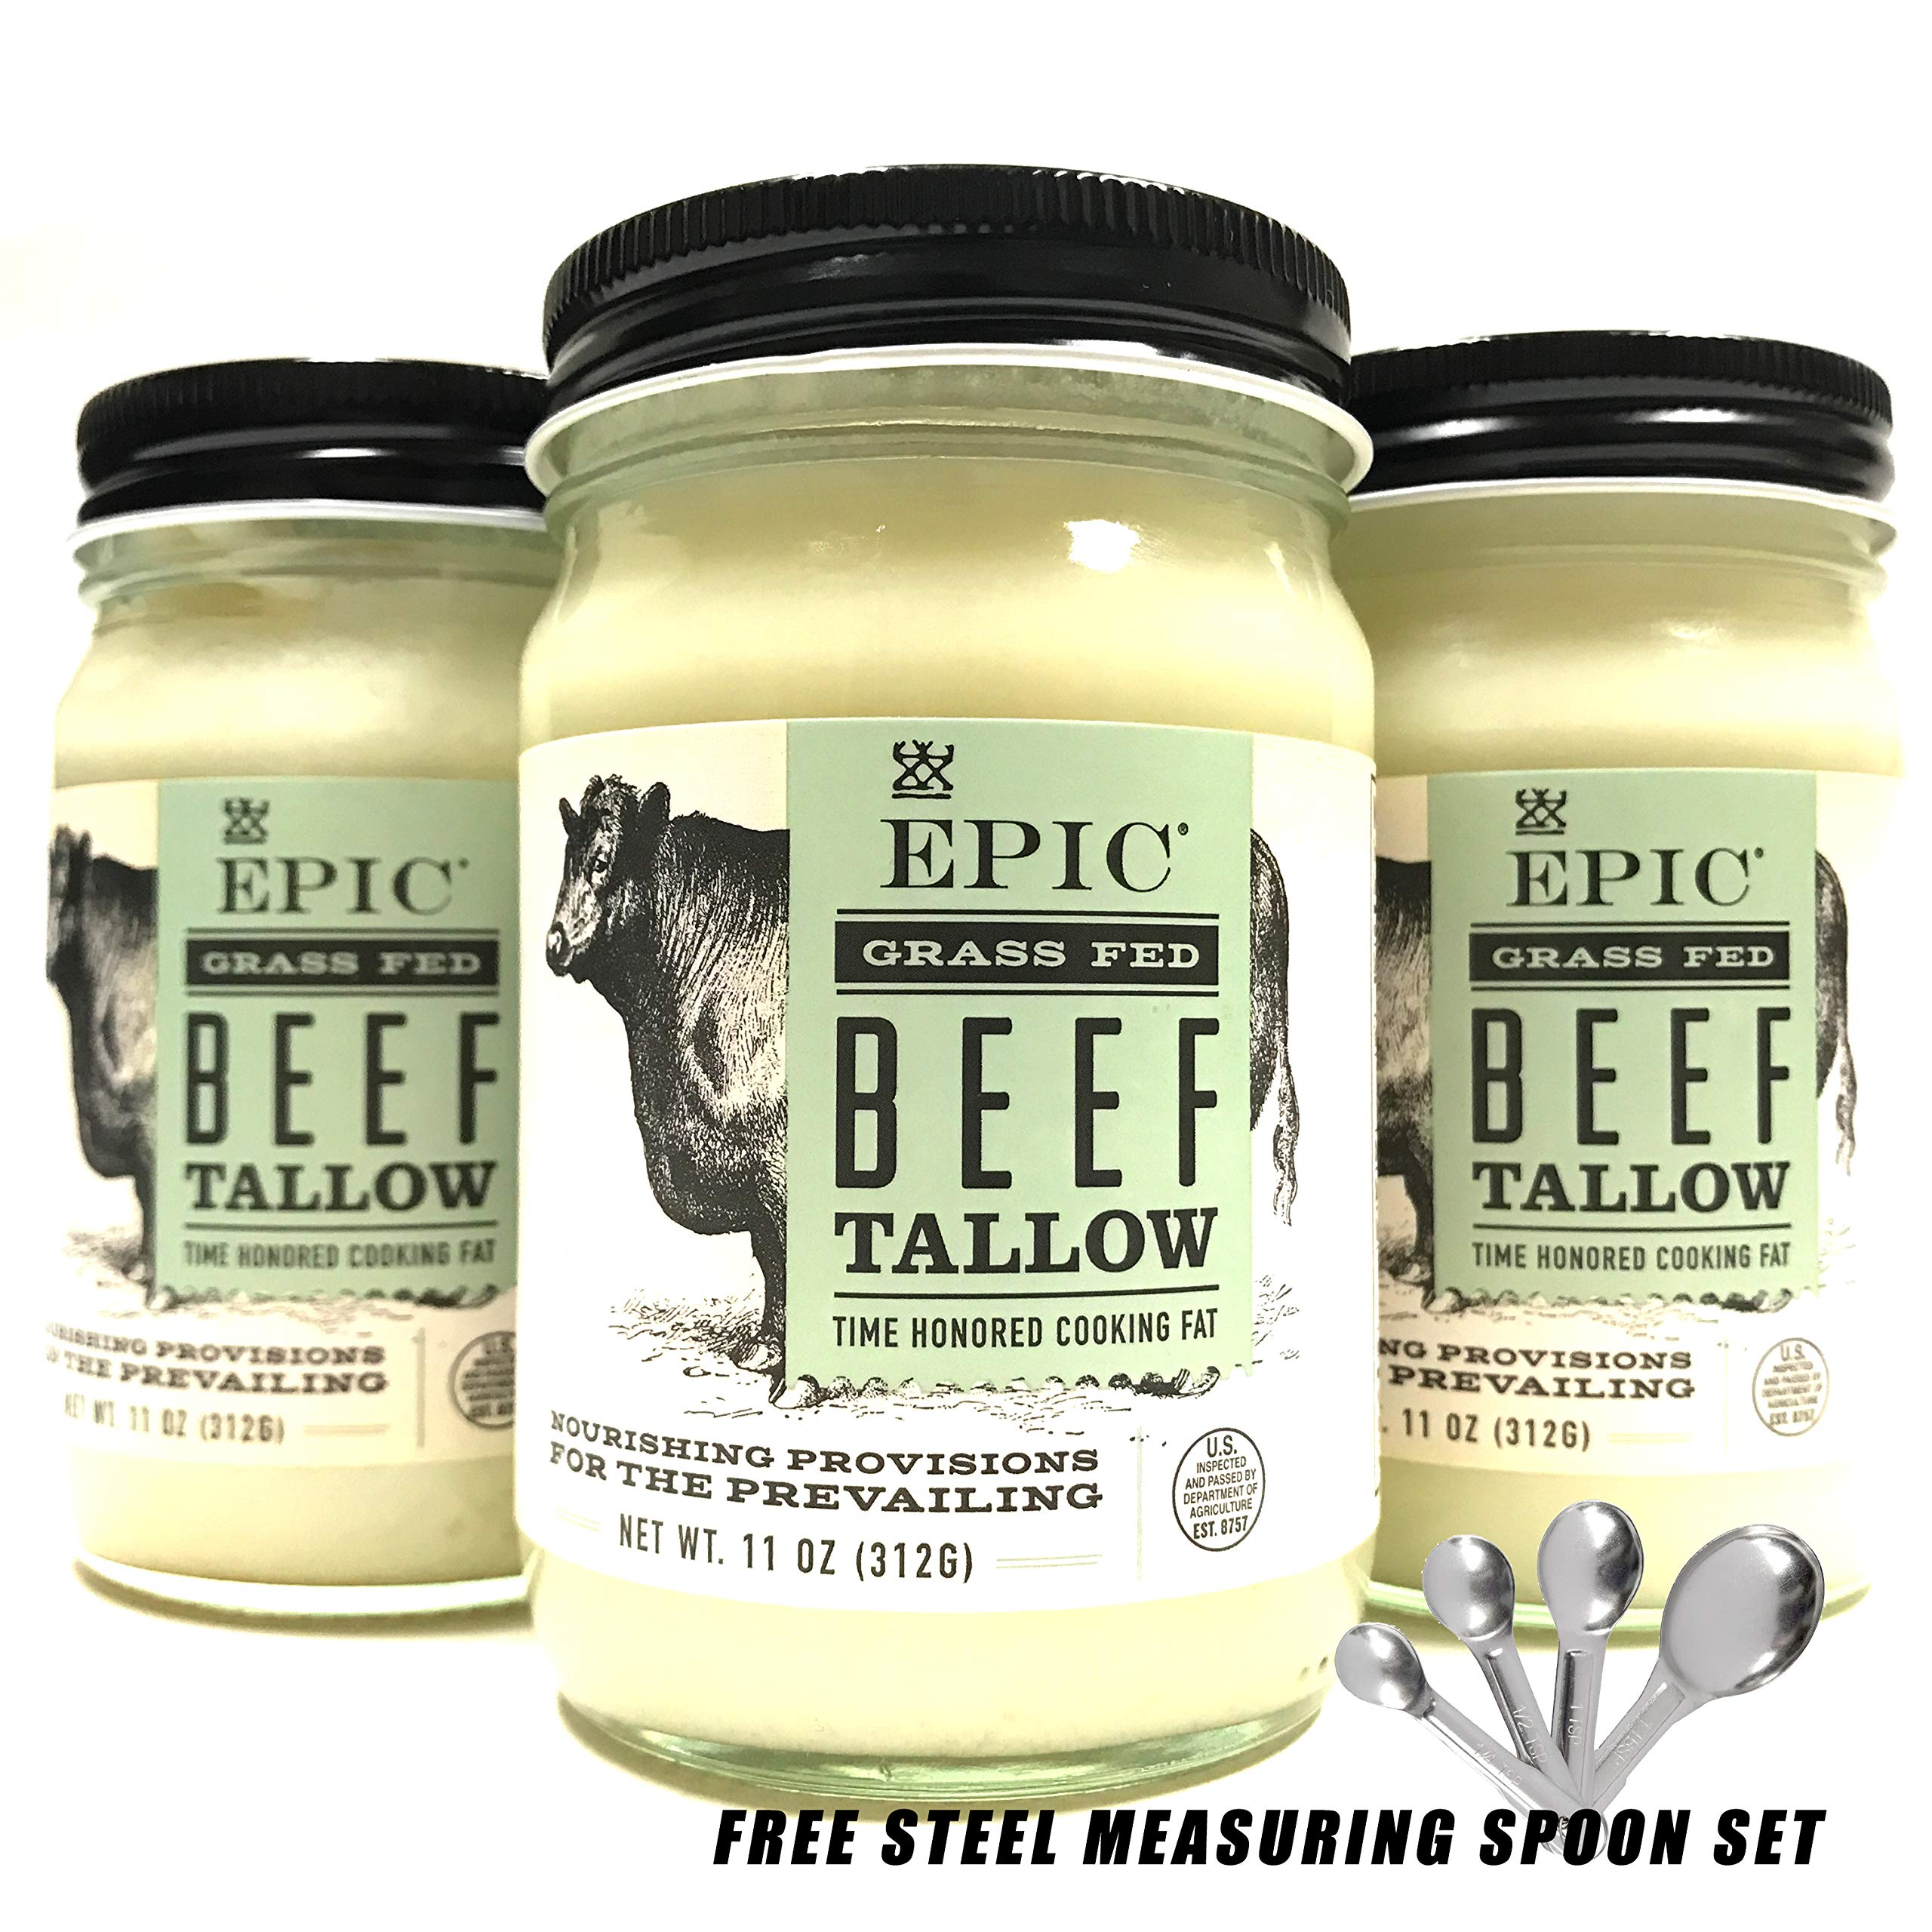 EPIC Animal Oil Grass Fed Beef Tallow 11 Fl Oz, w/Free Measuring Spoon Set | Pack of 3